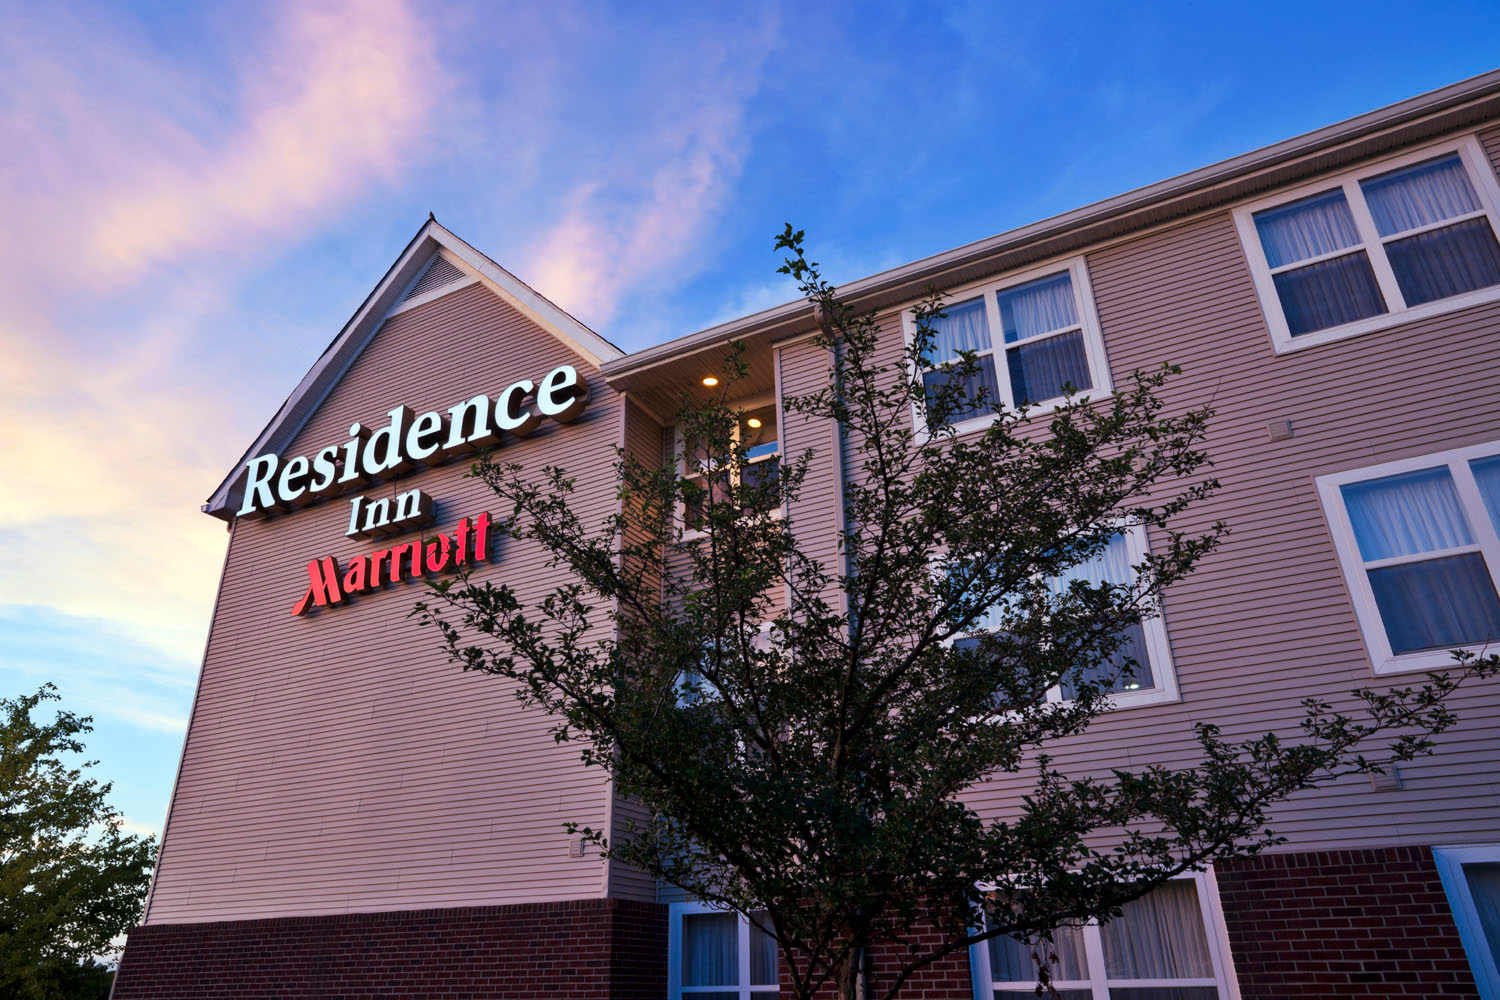 Residence Inn by Marriott Indianapolis Fishers image 1